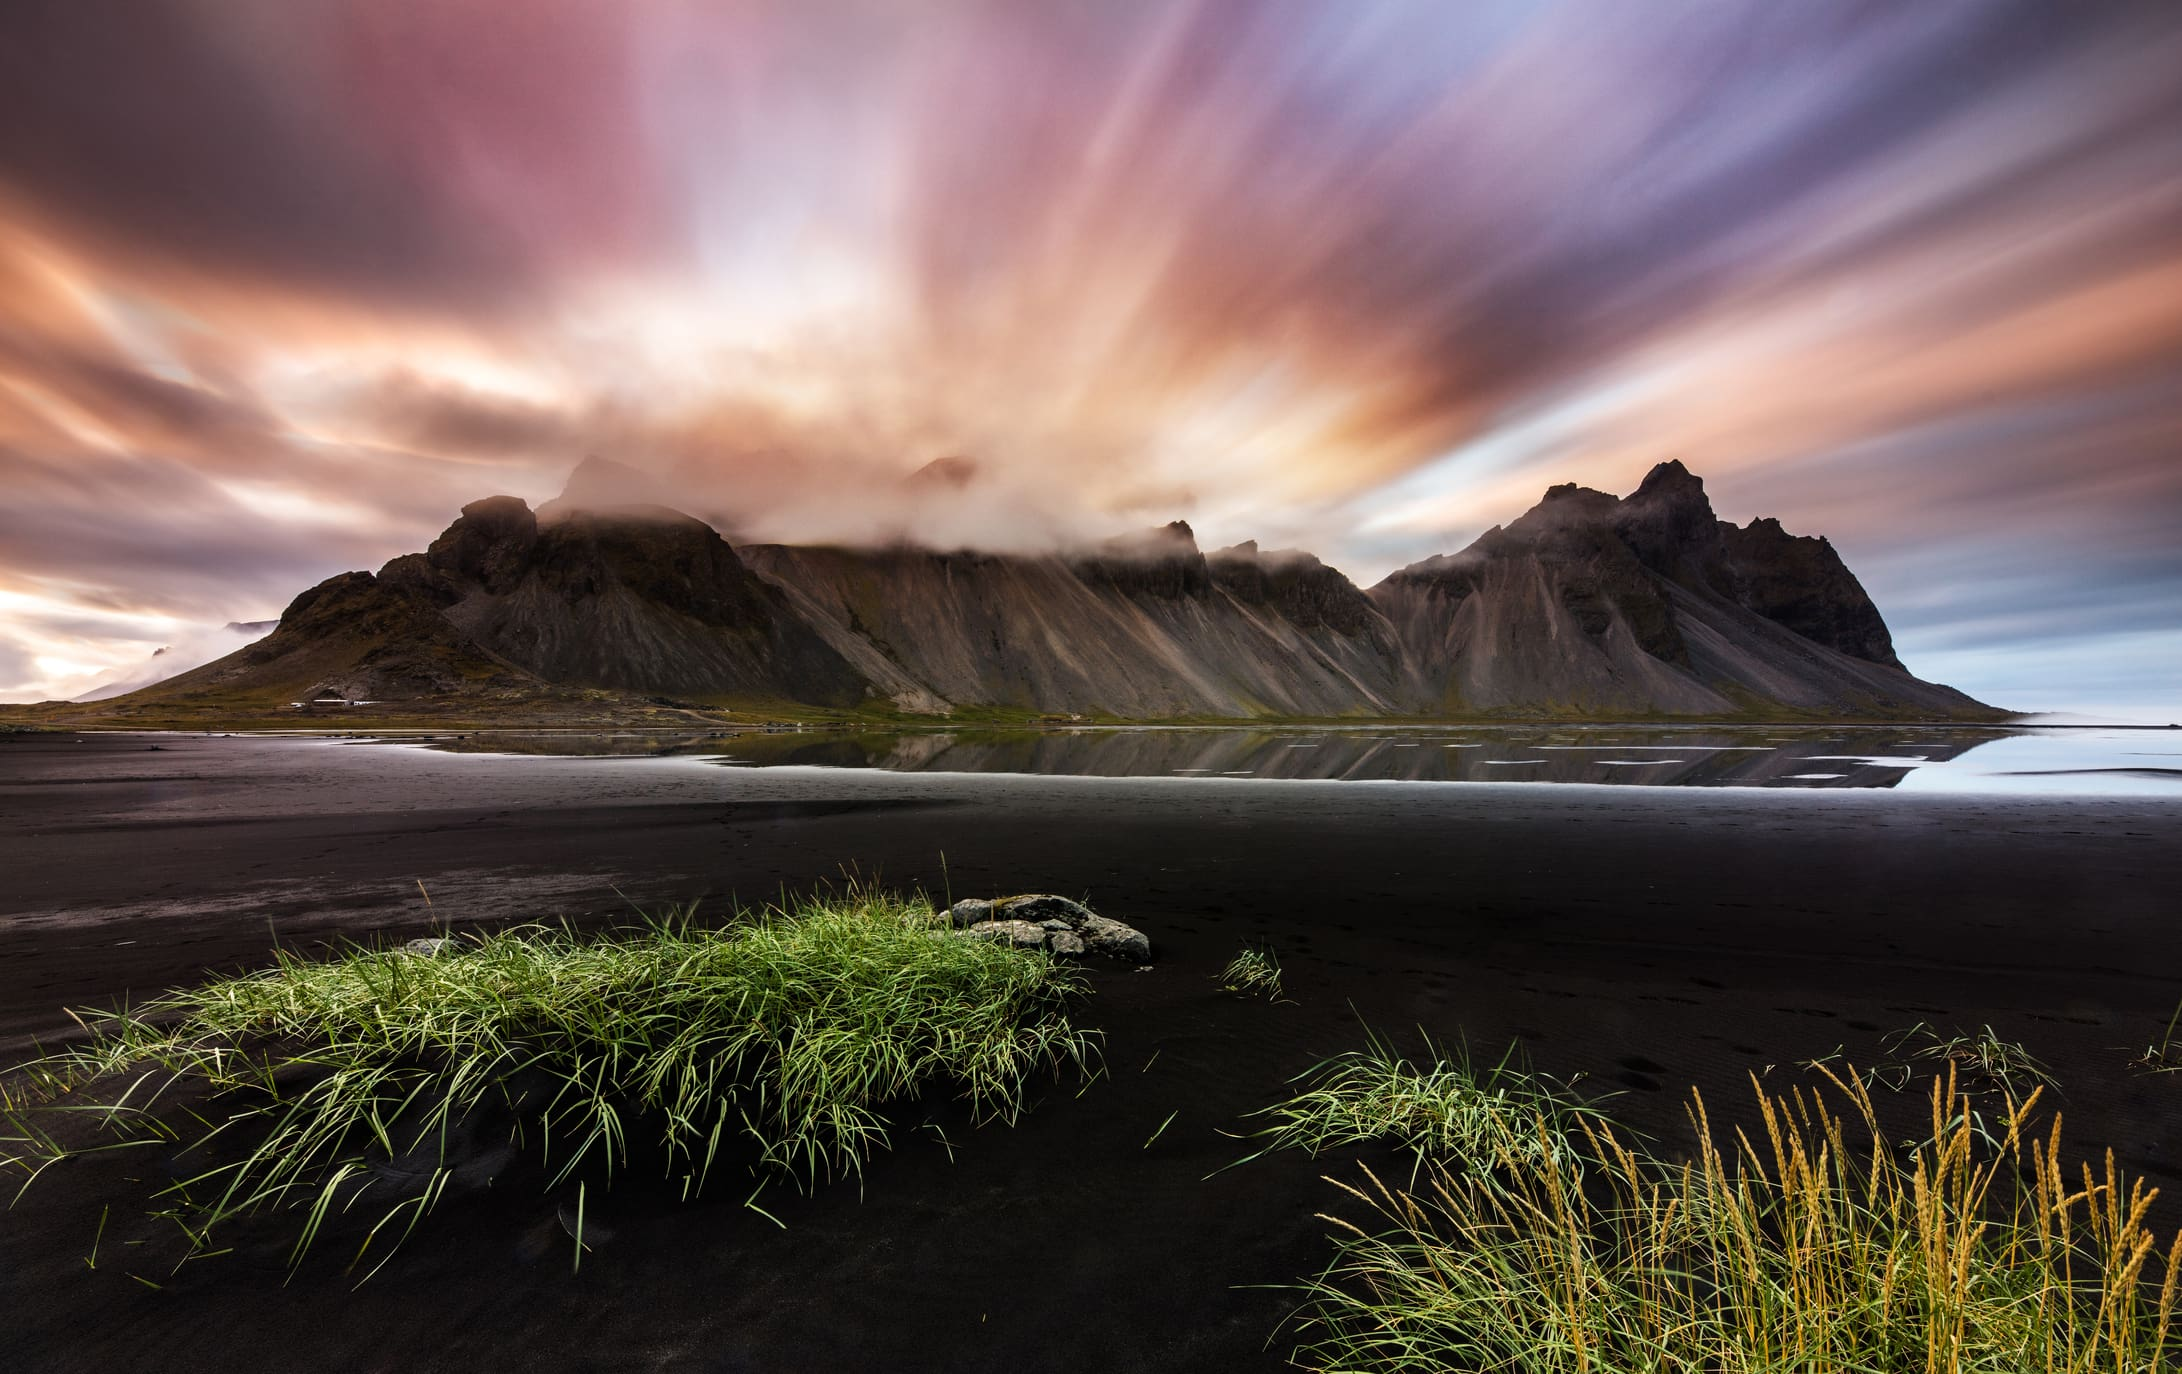 Simple, Yet Impactful Landscape Photography Tips